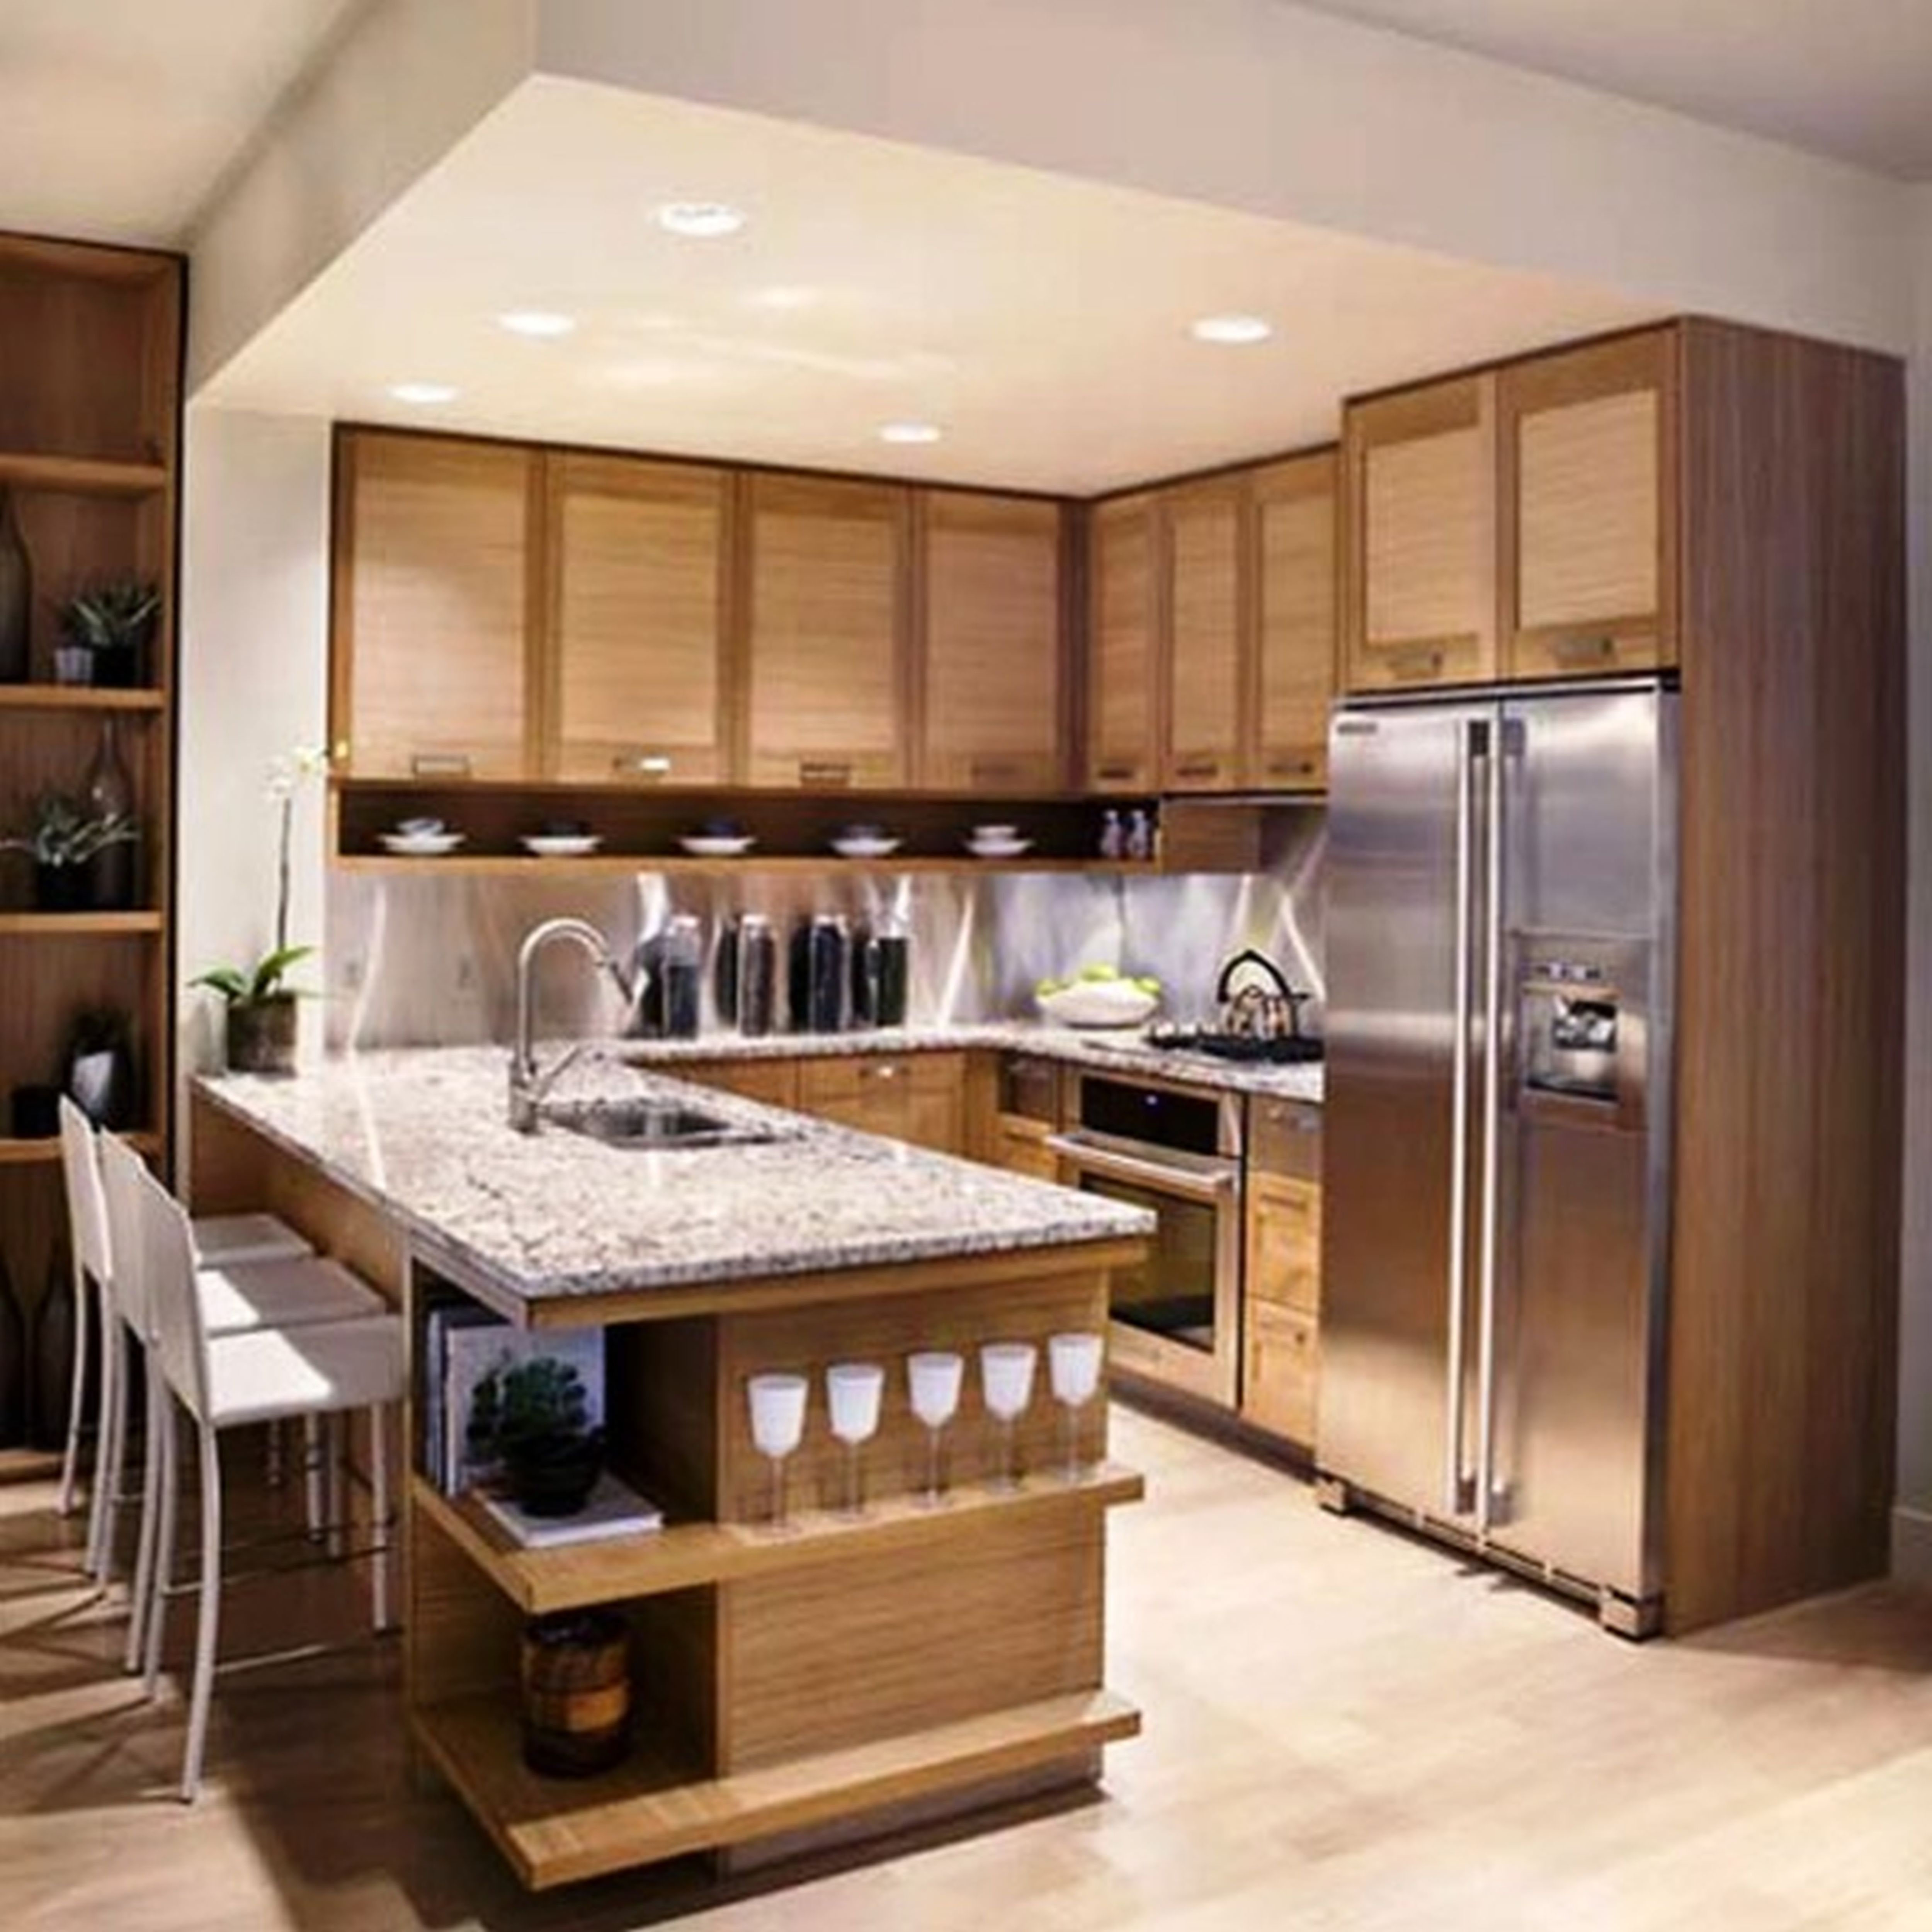 Simple Kitchen Room Design kitchen. brown wooden cabinet and kitchen island with shelves and